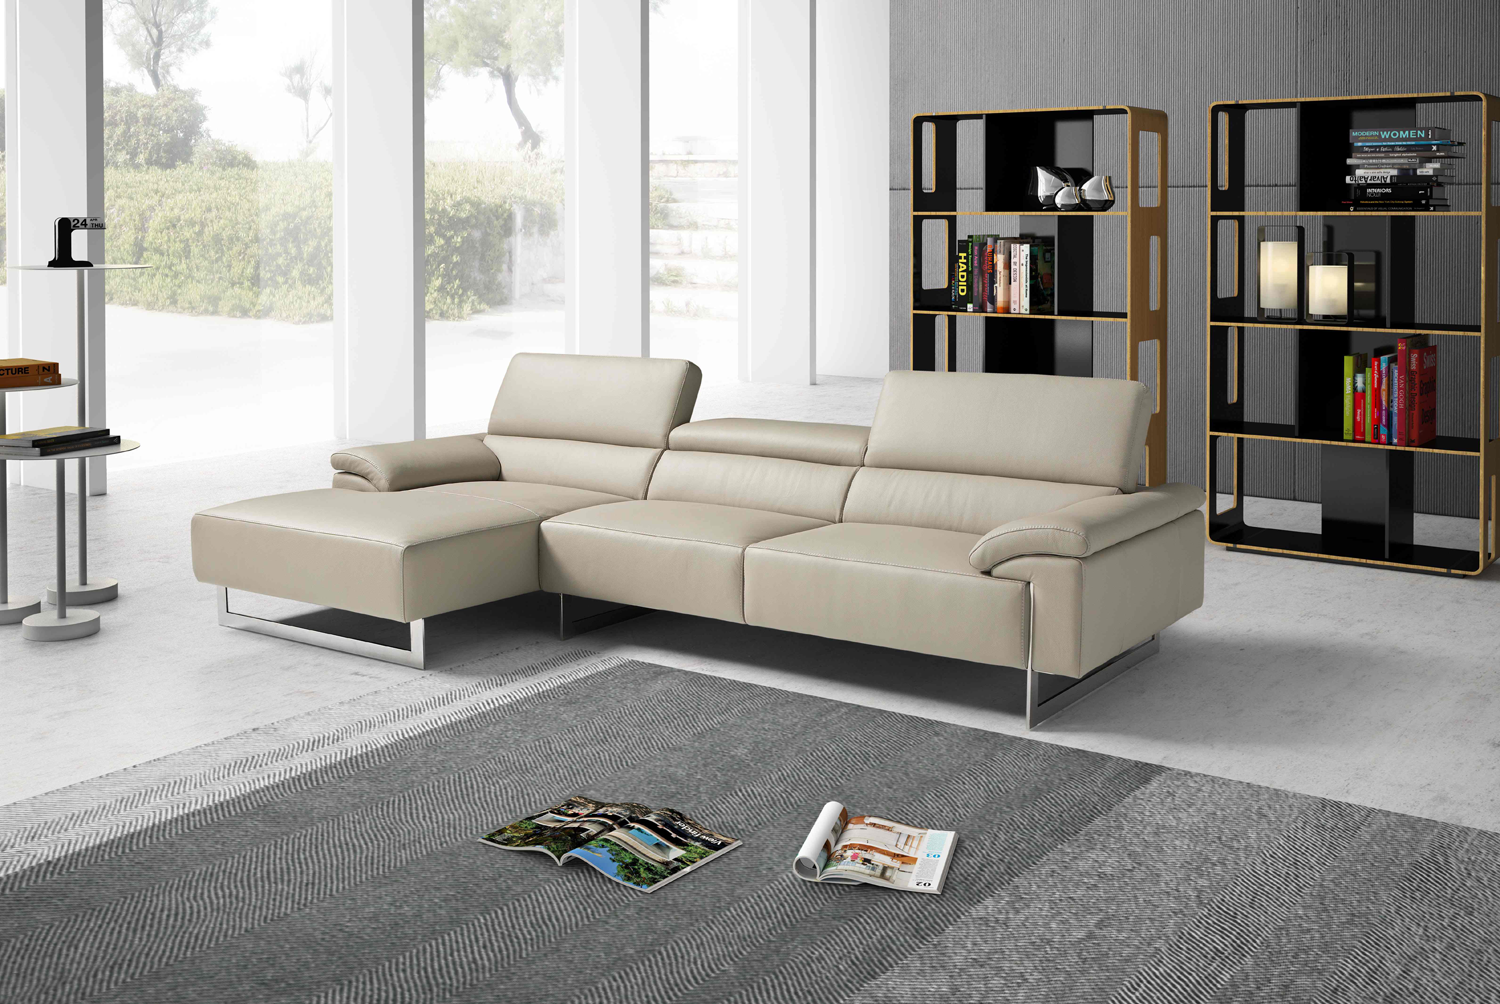 image of kilcroney egoitaliano malika sofa